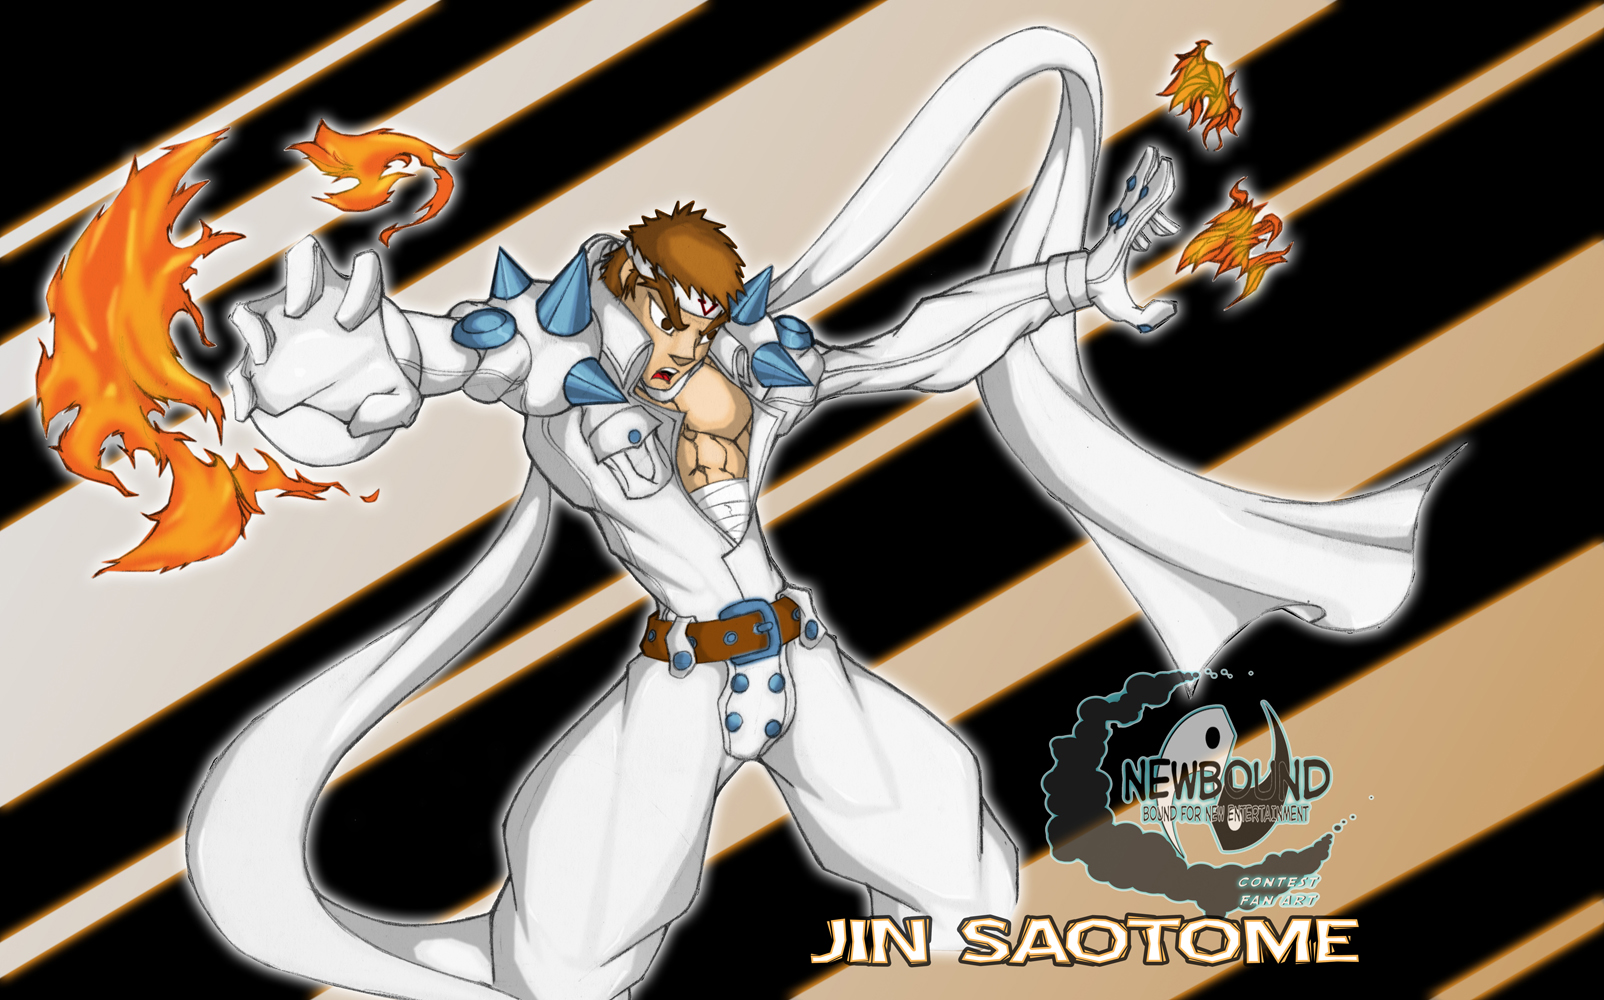 Jin Saotome by Newbound